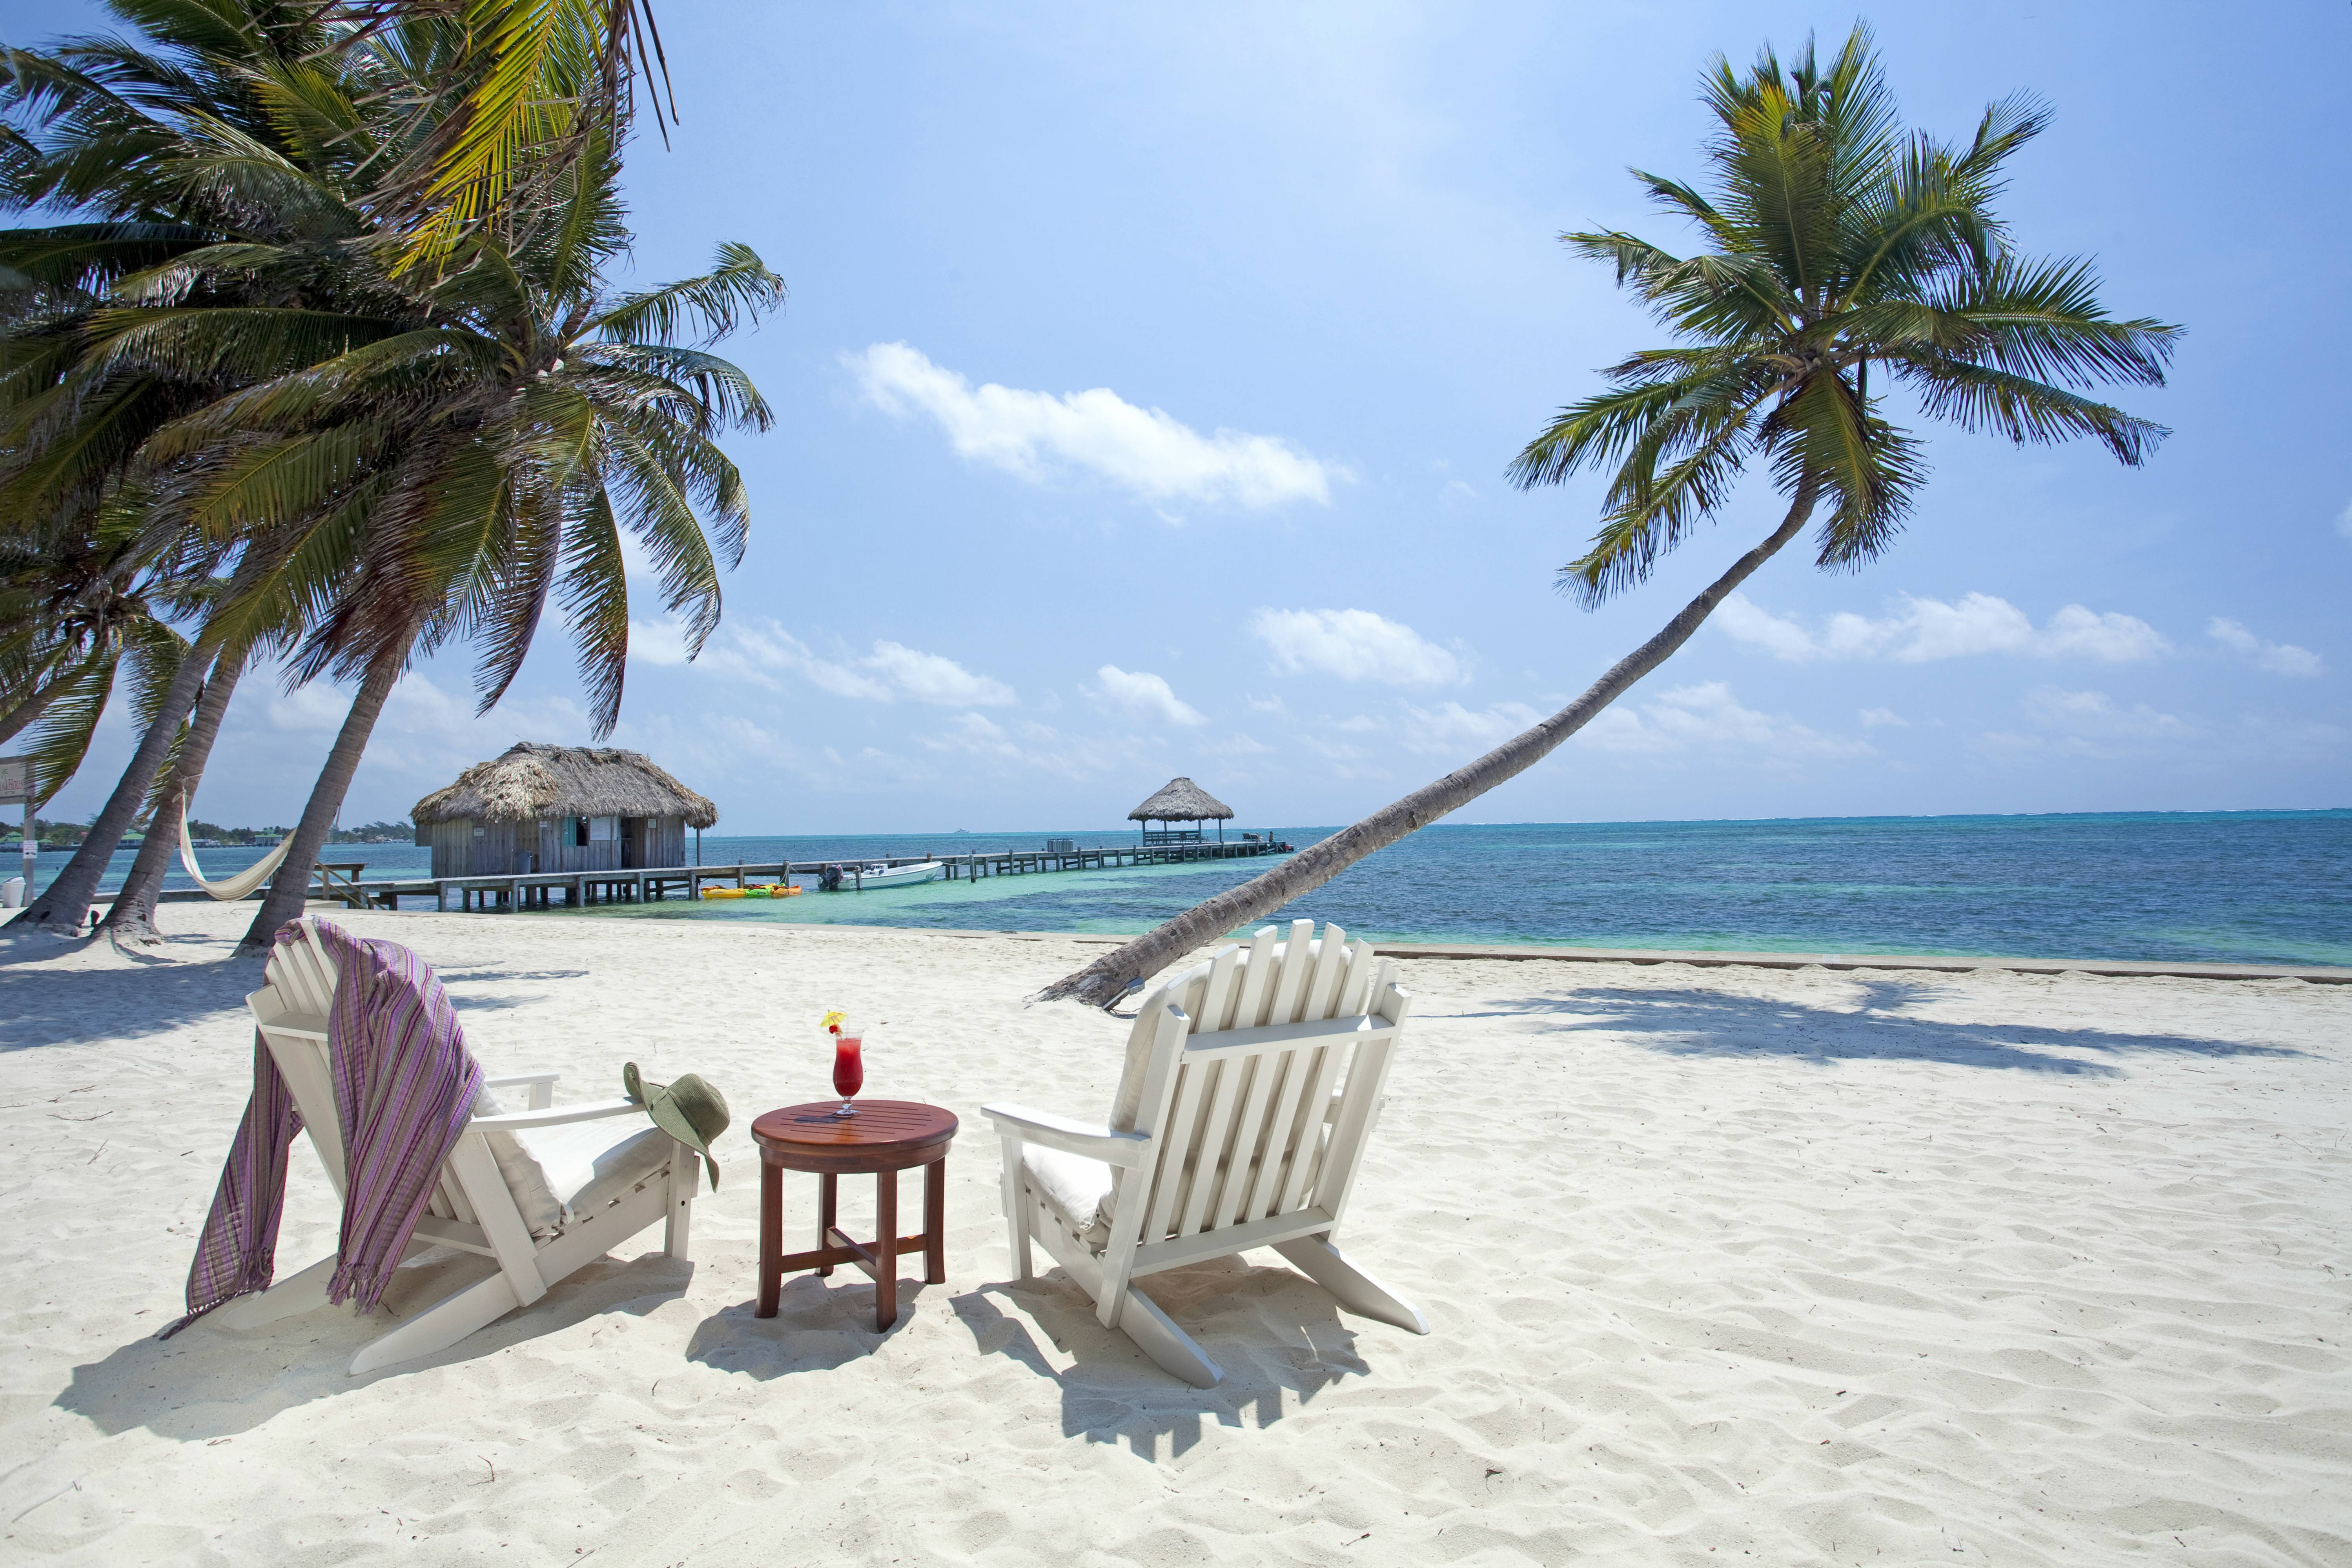 Belize, Ambergris Caye, San Pedro, sun loungers on beach with coconut palms and Caribbean sea